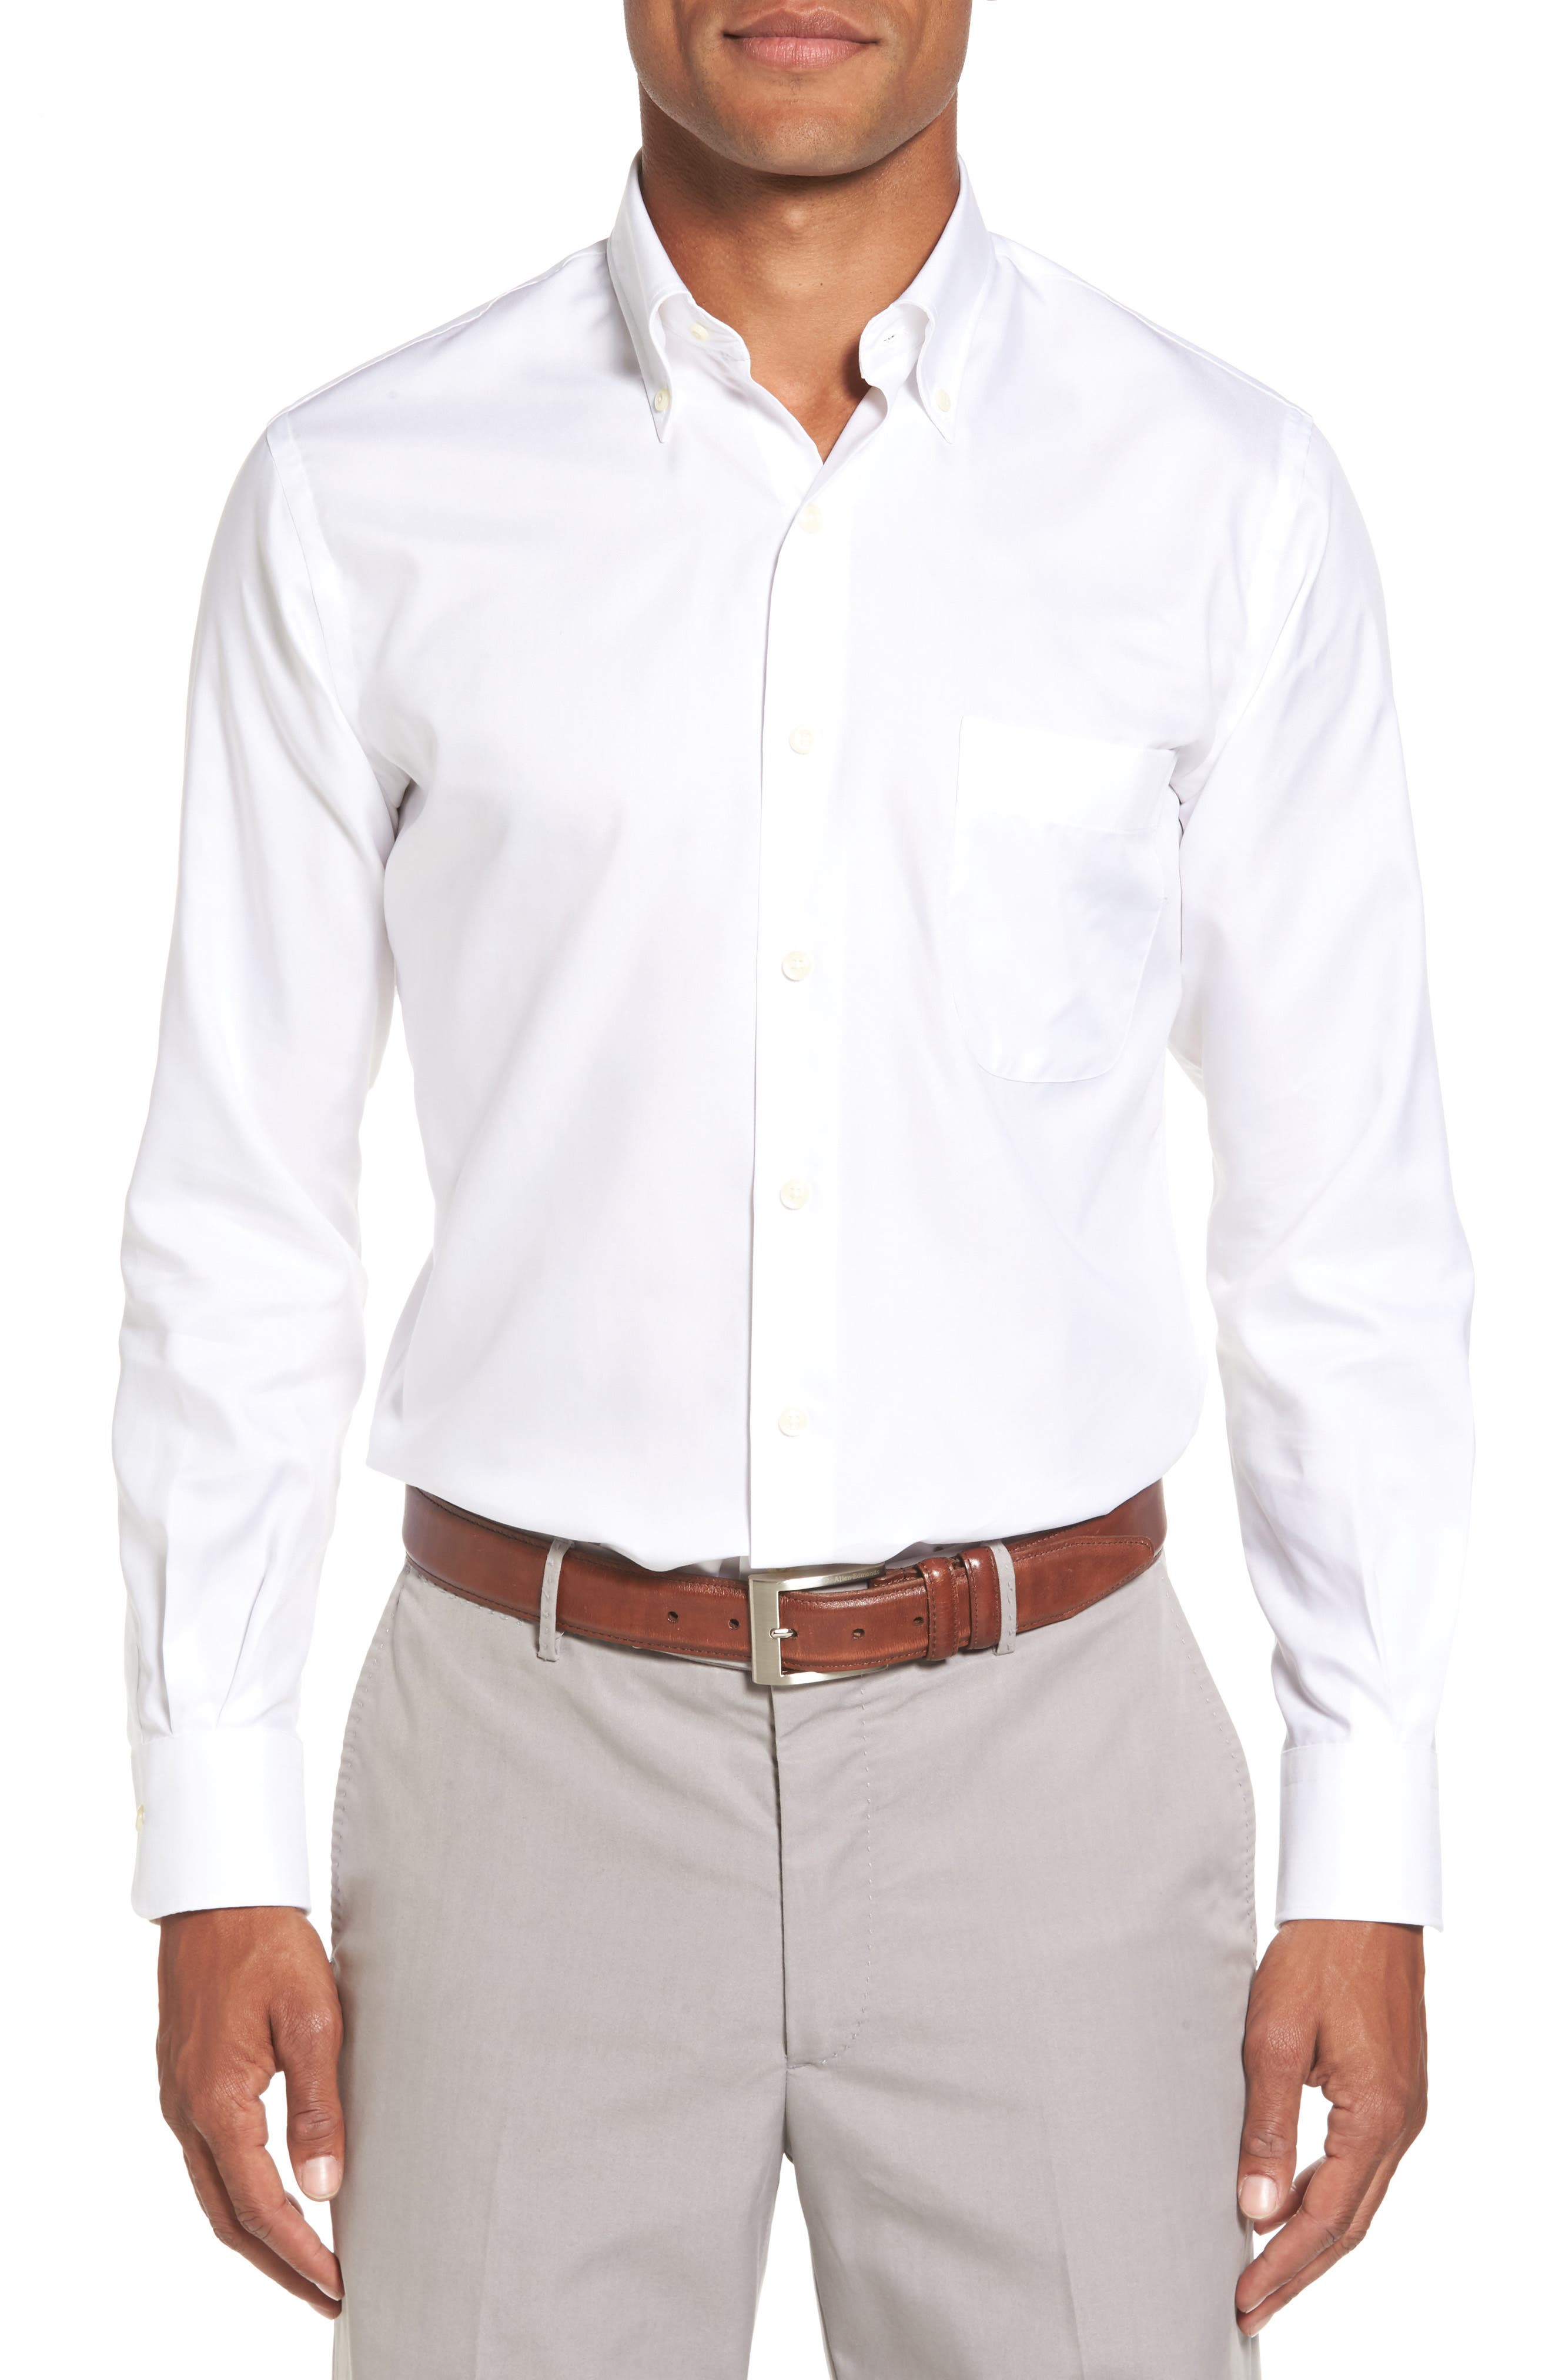 Crown Soft Pinpoint Regular Fit Sport Shirt,                             Main thumbnail 1, color,                             WHITE